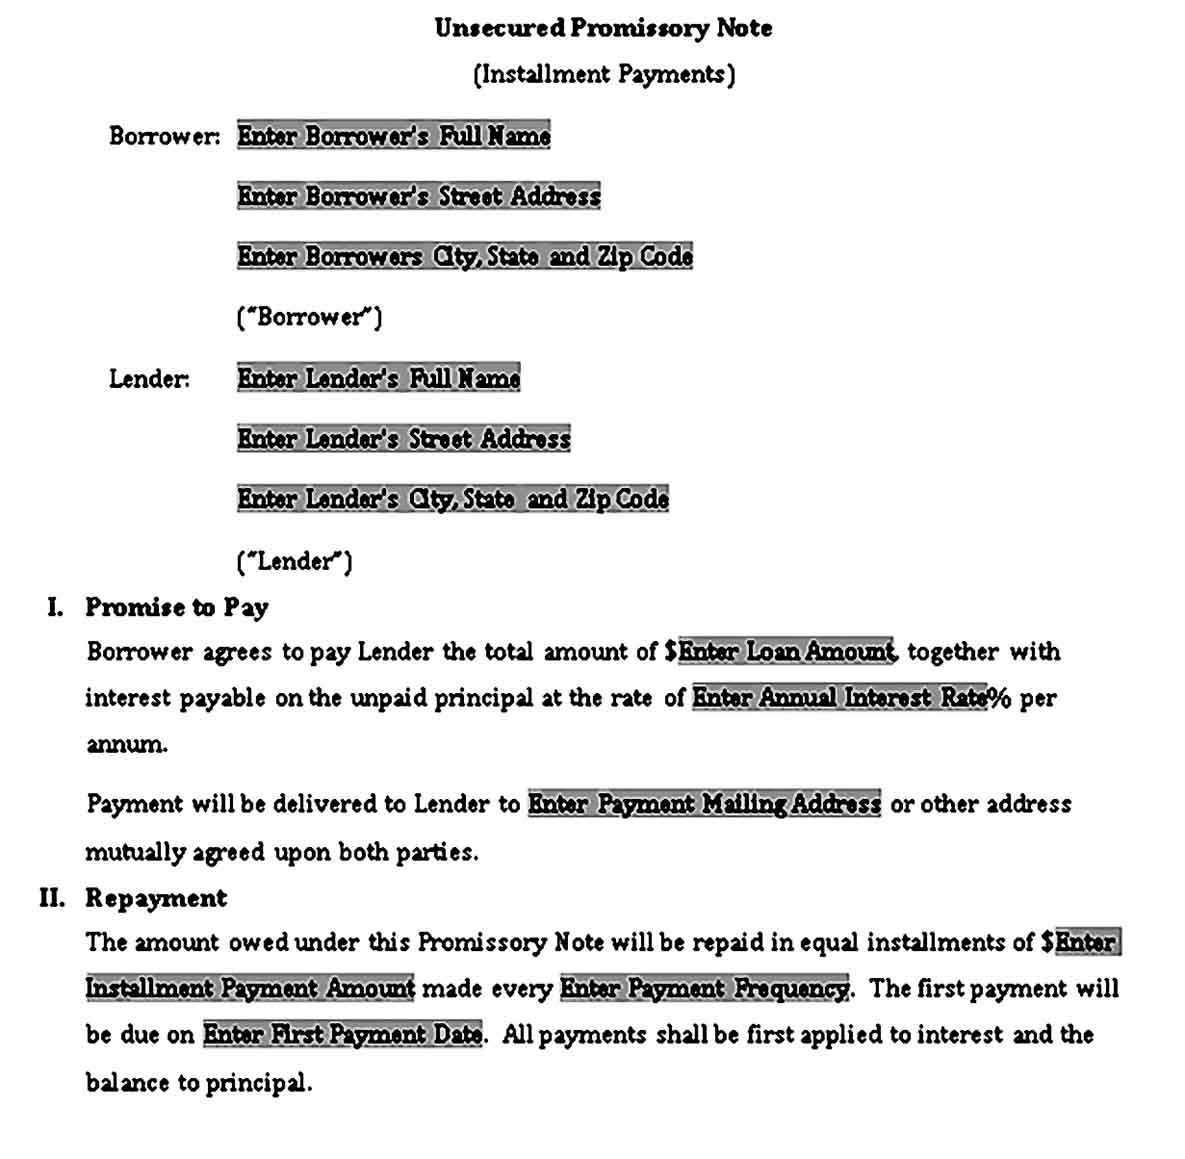 suze orman secured promissory note